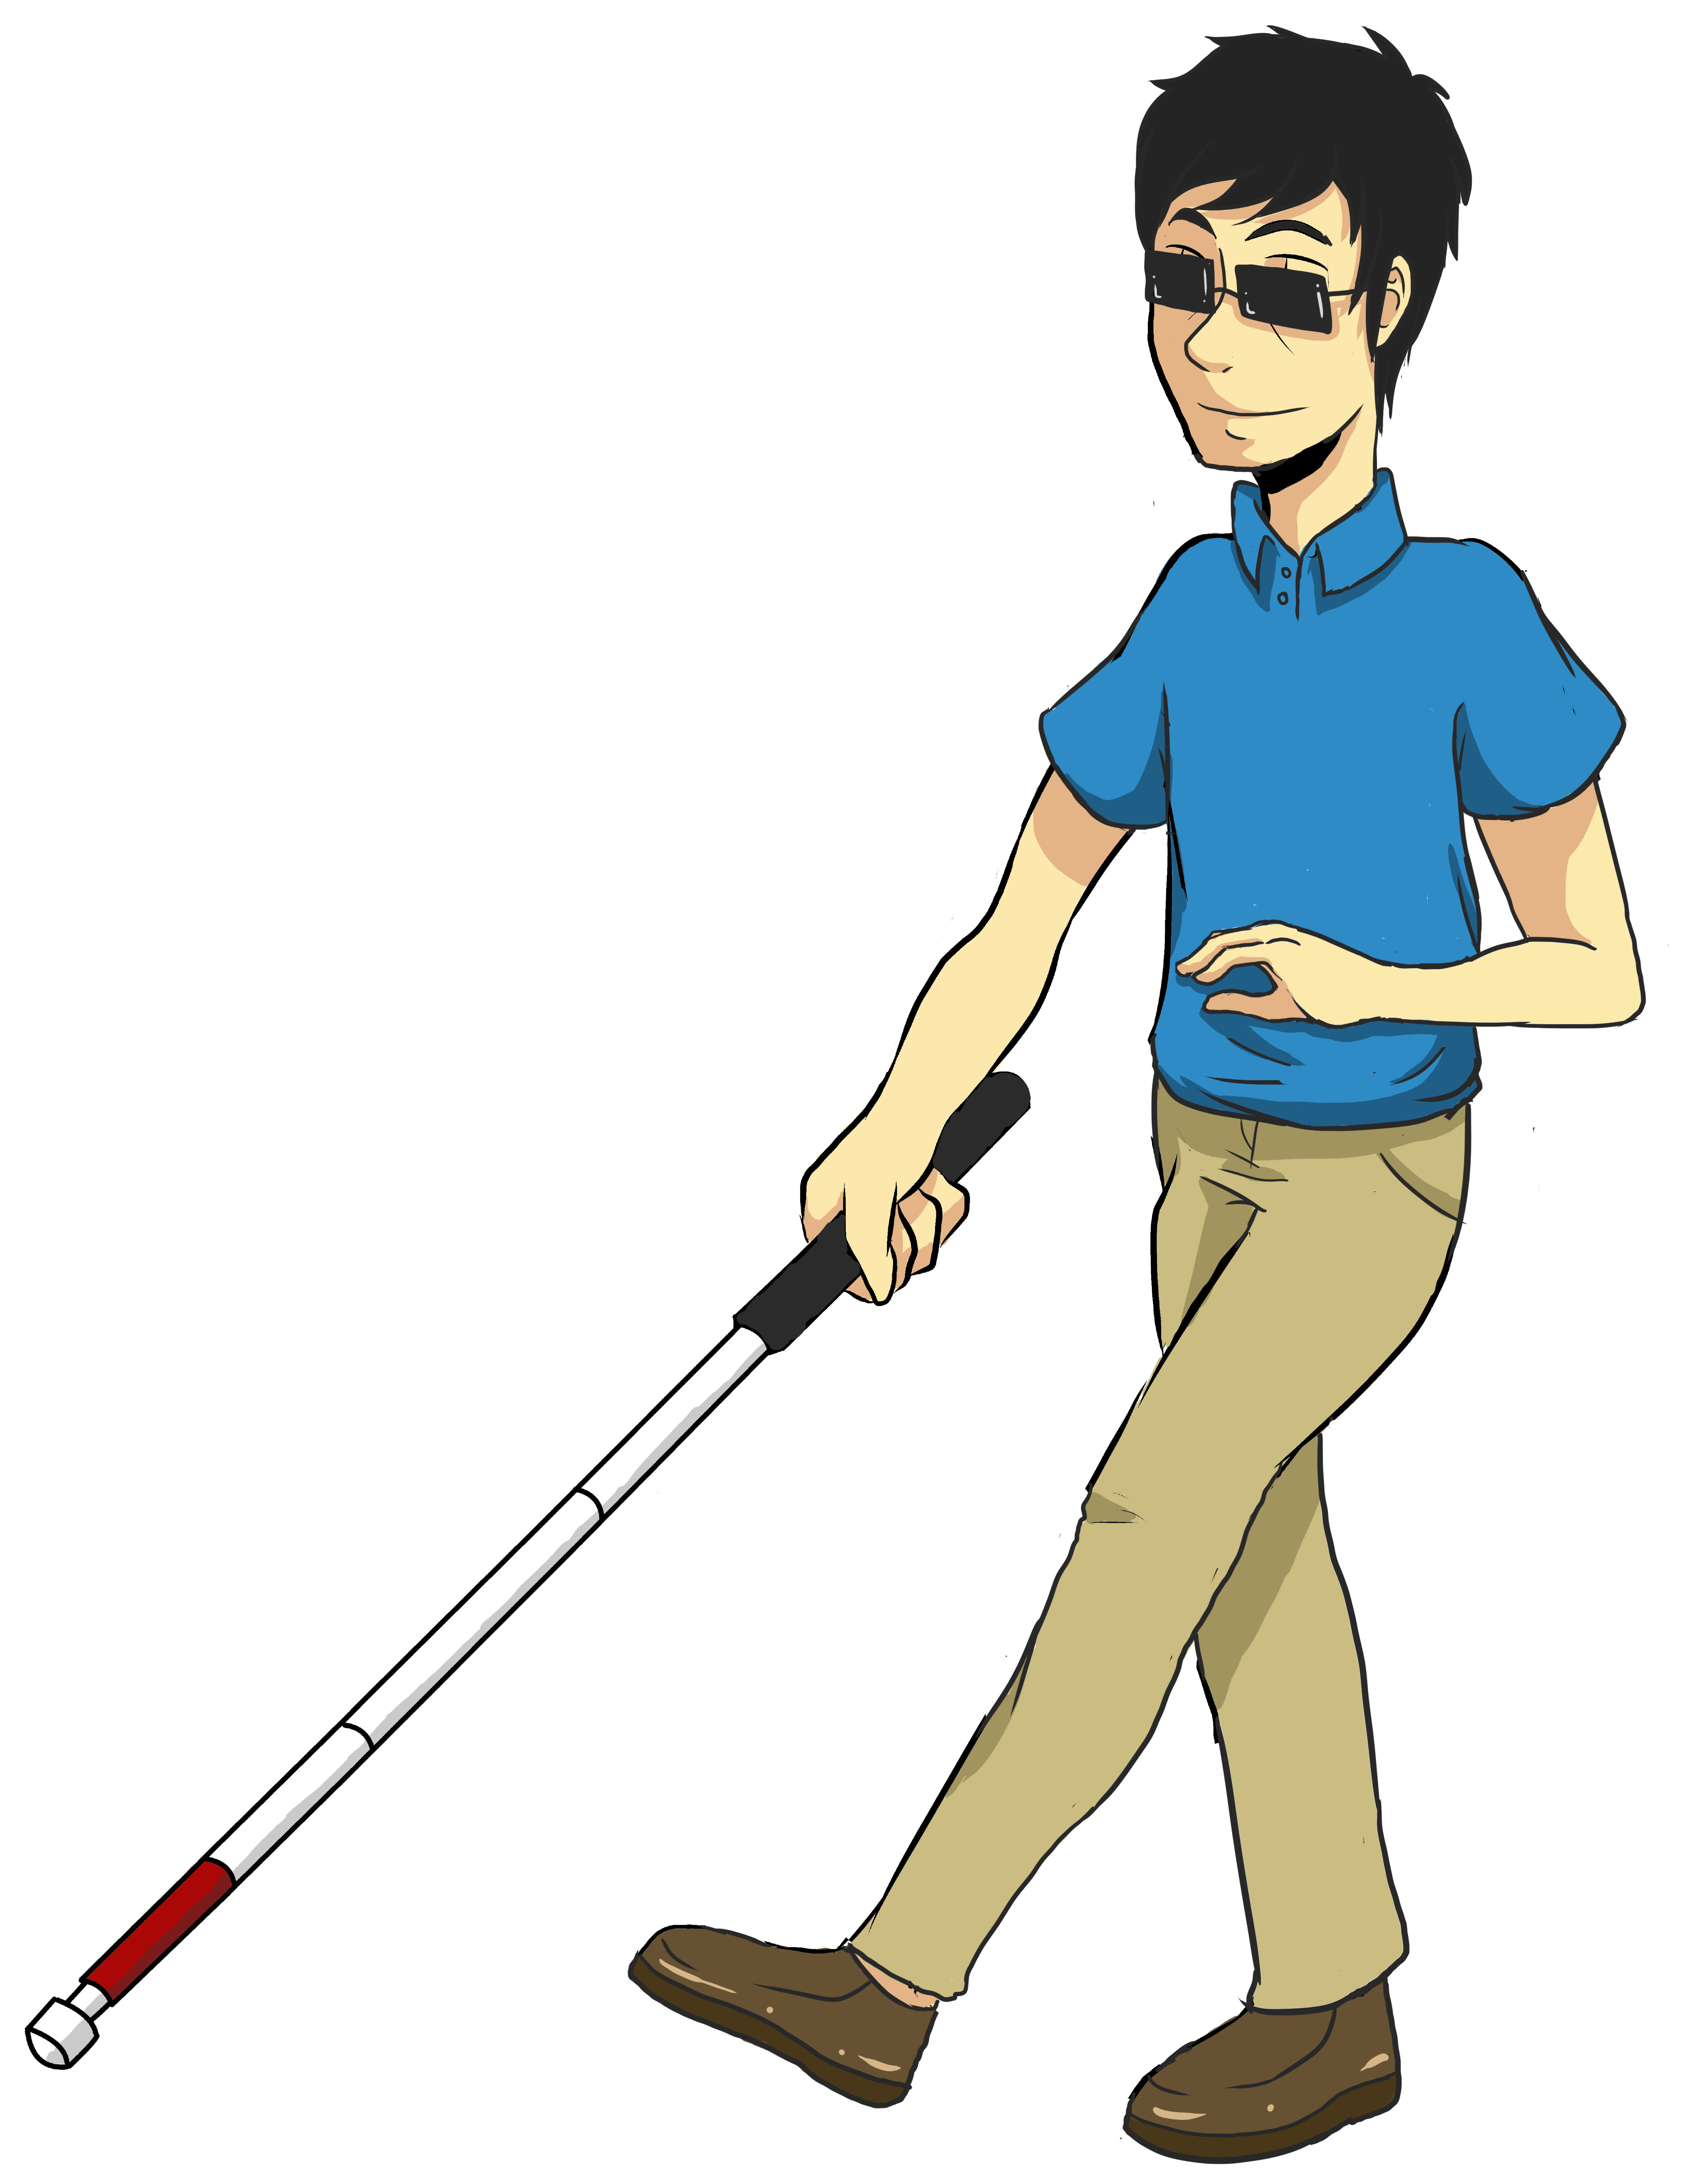 cane drawing old